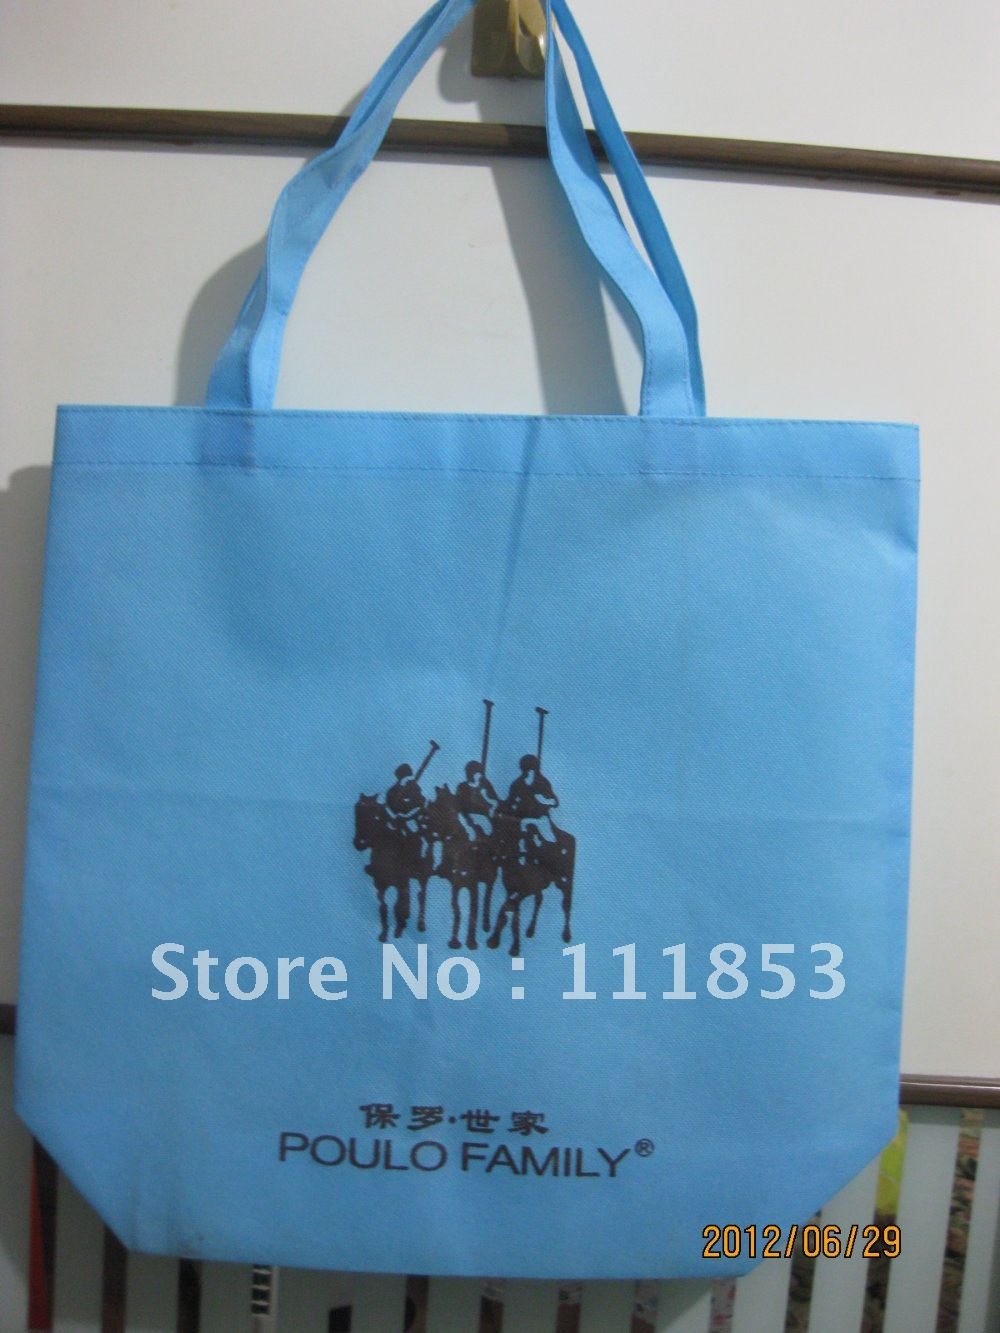 branded shopping bags images - photo #47